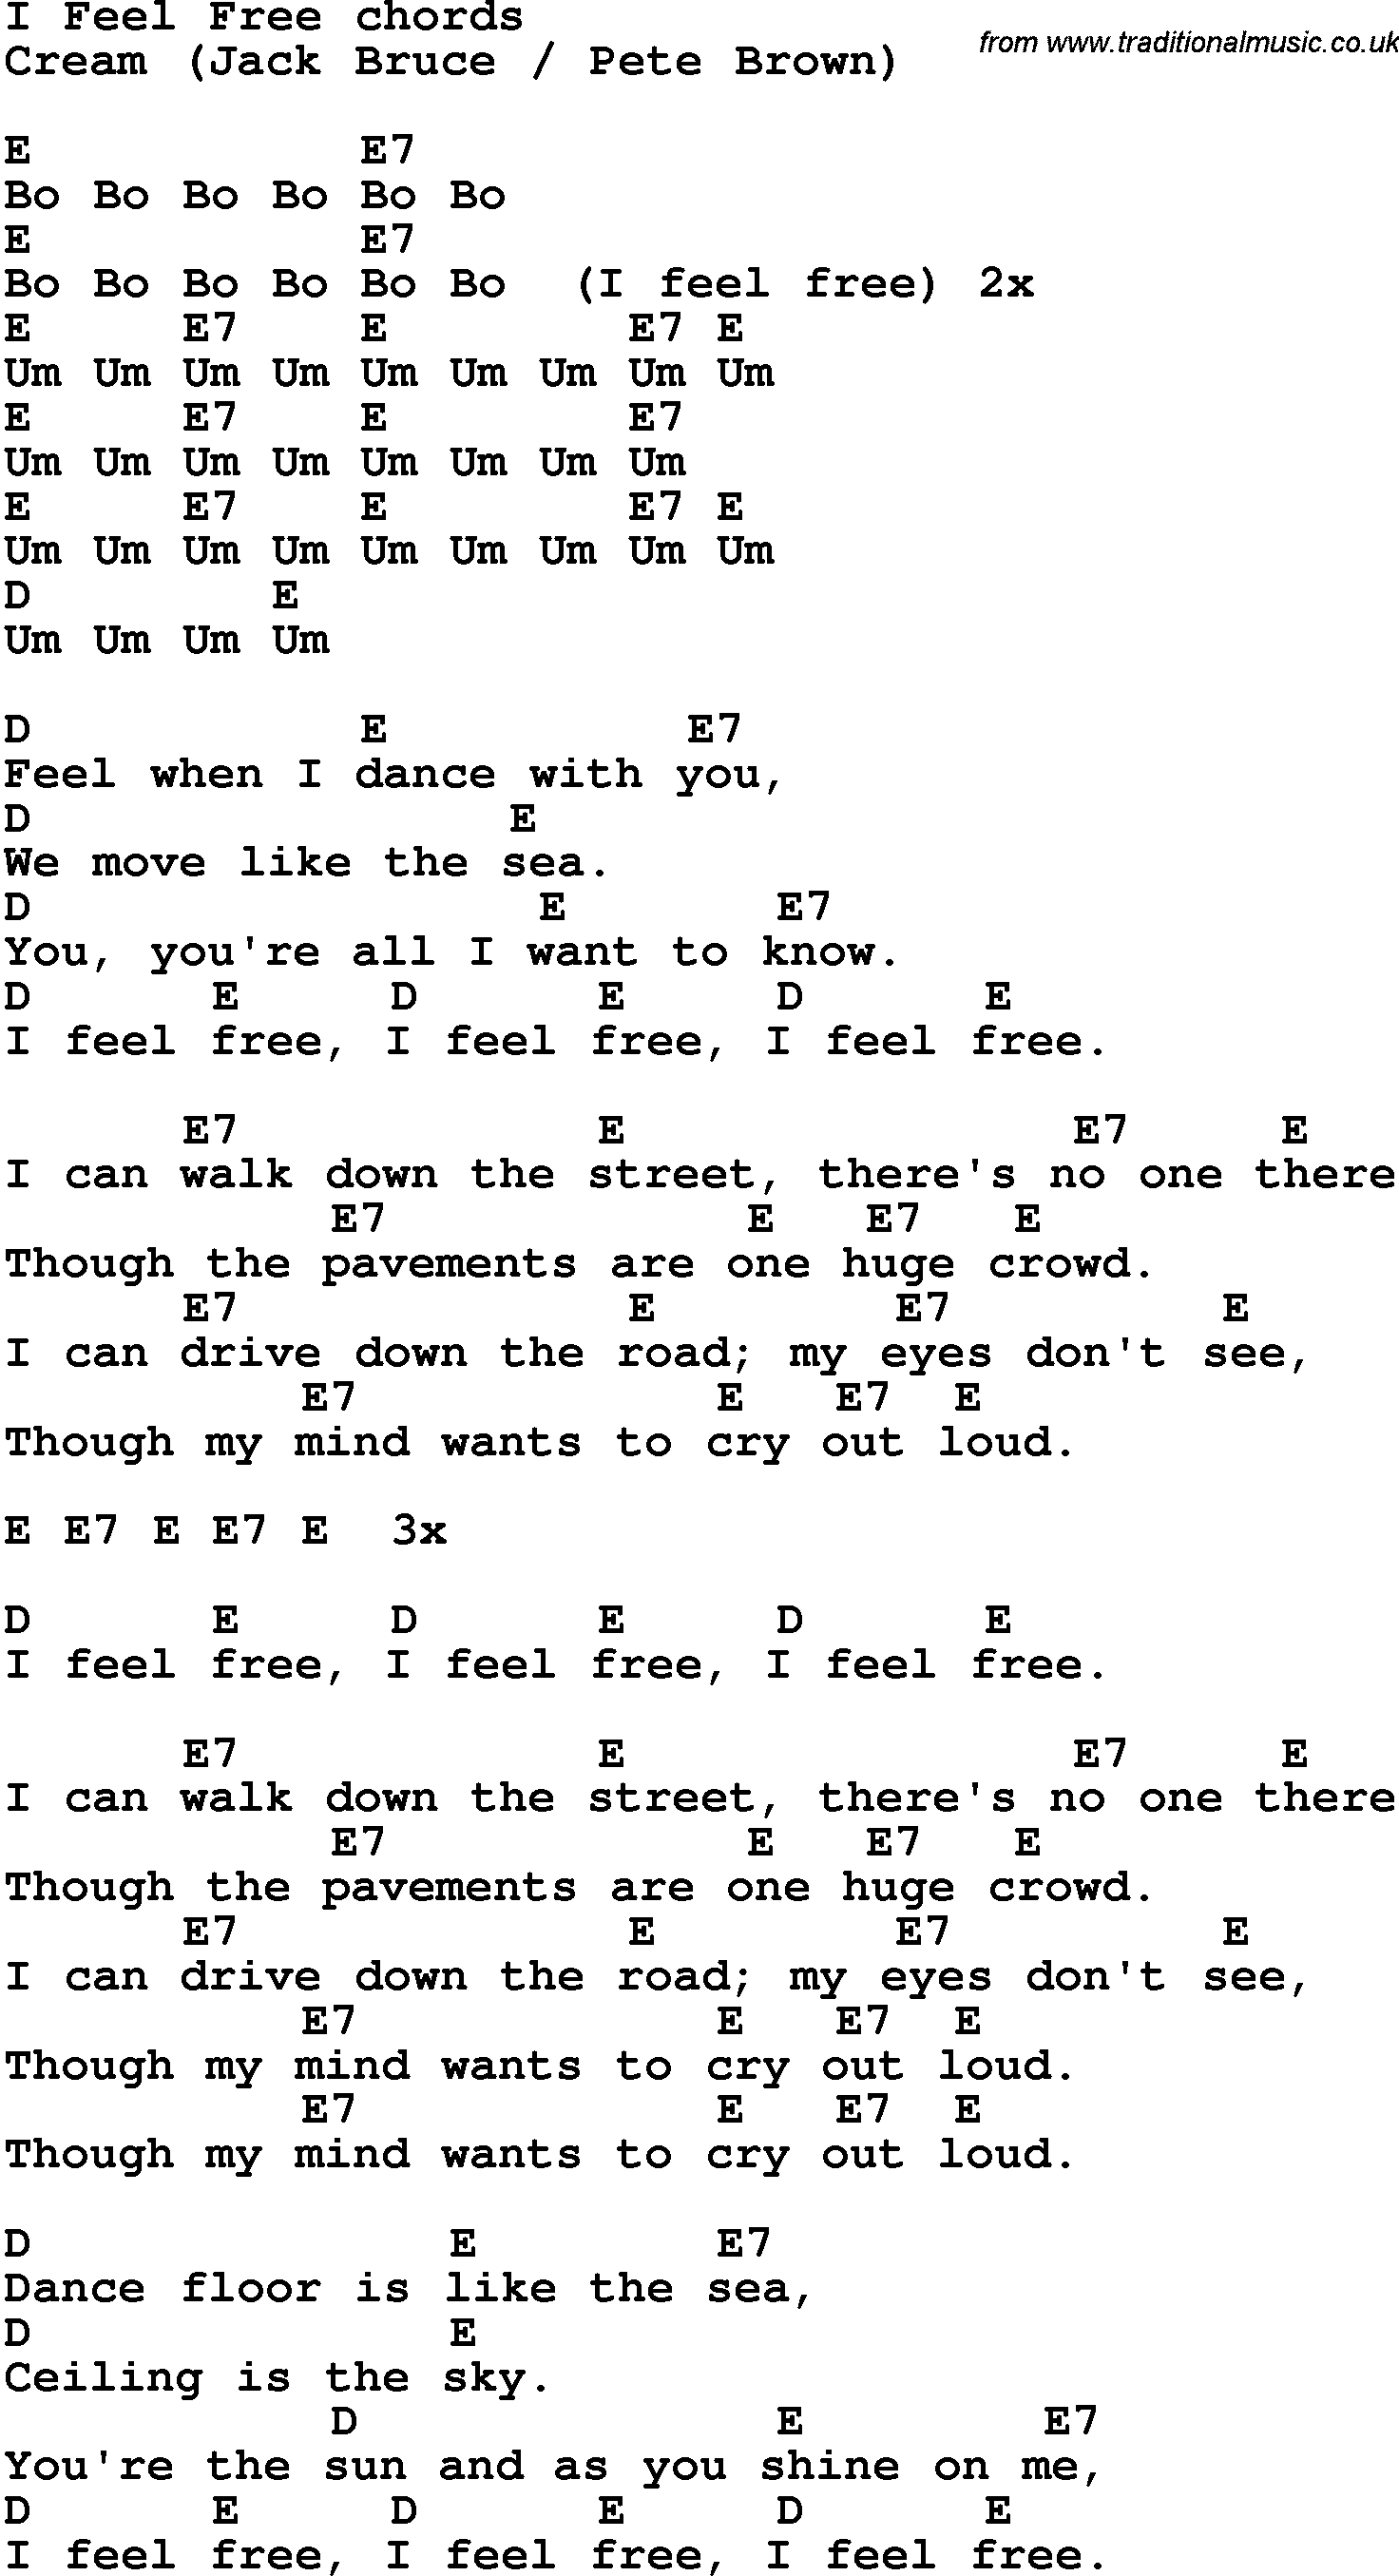 Song lyrics with guitar chords for I Feel Free